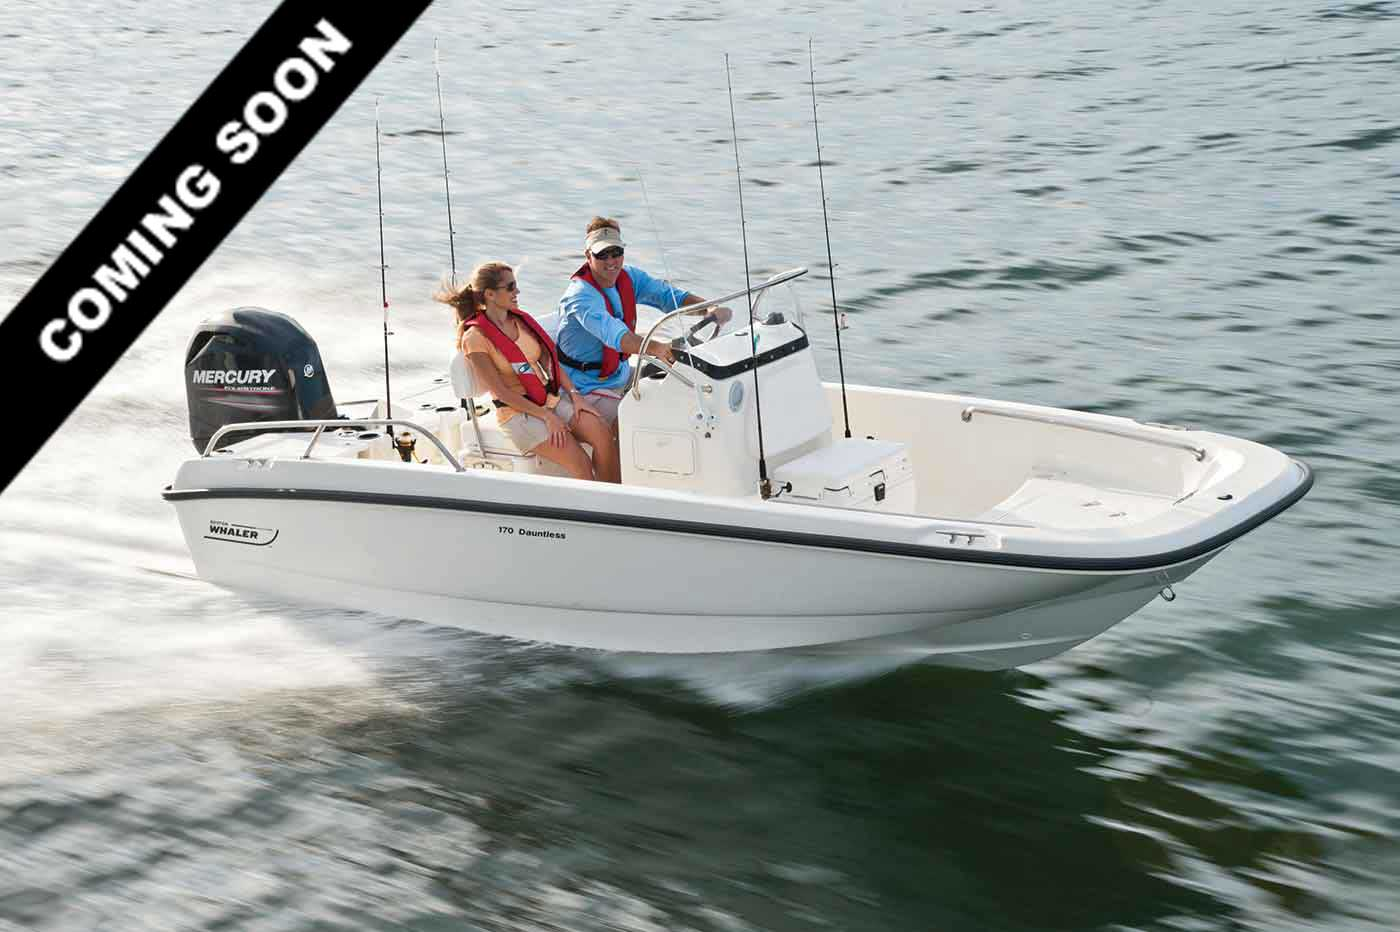 2019 BOSTON WHALER 170 DAUNTLESS for sale